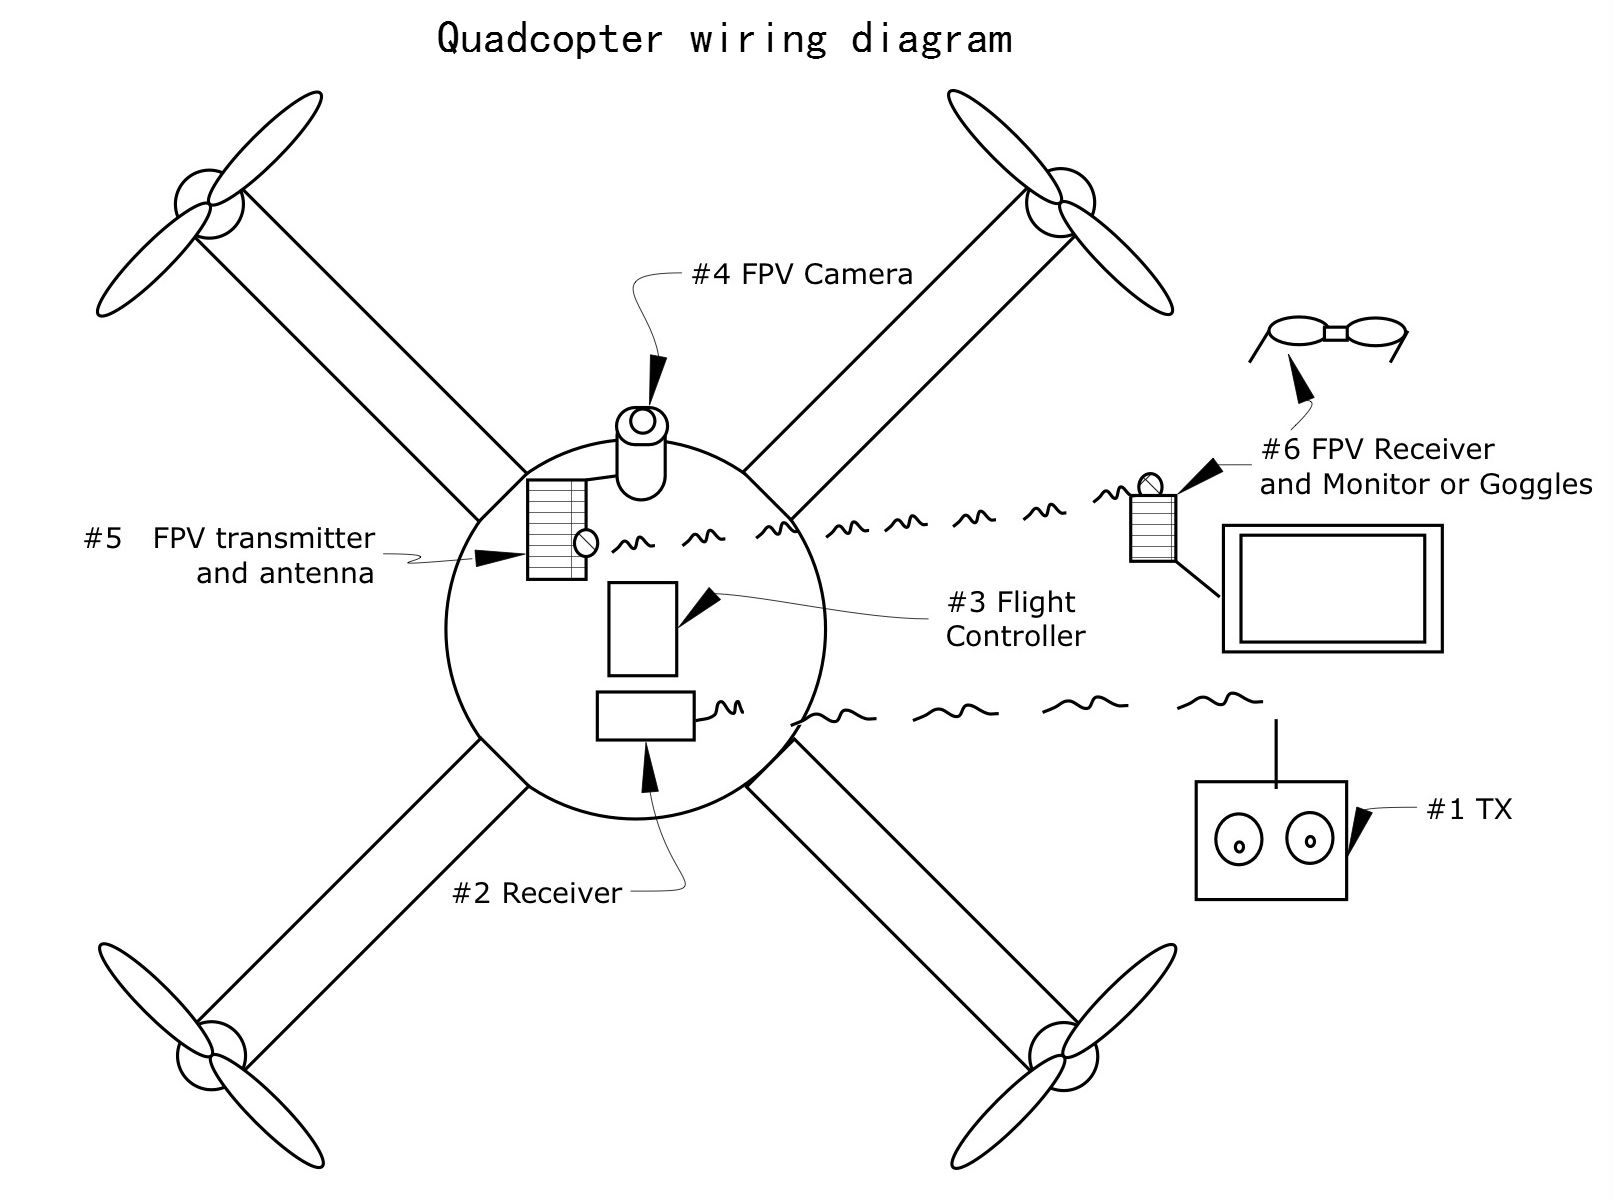 Quadcopter Wiring Diagram Guide How To Build A Circuit From Schematic Fpv